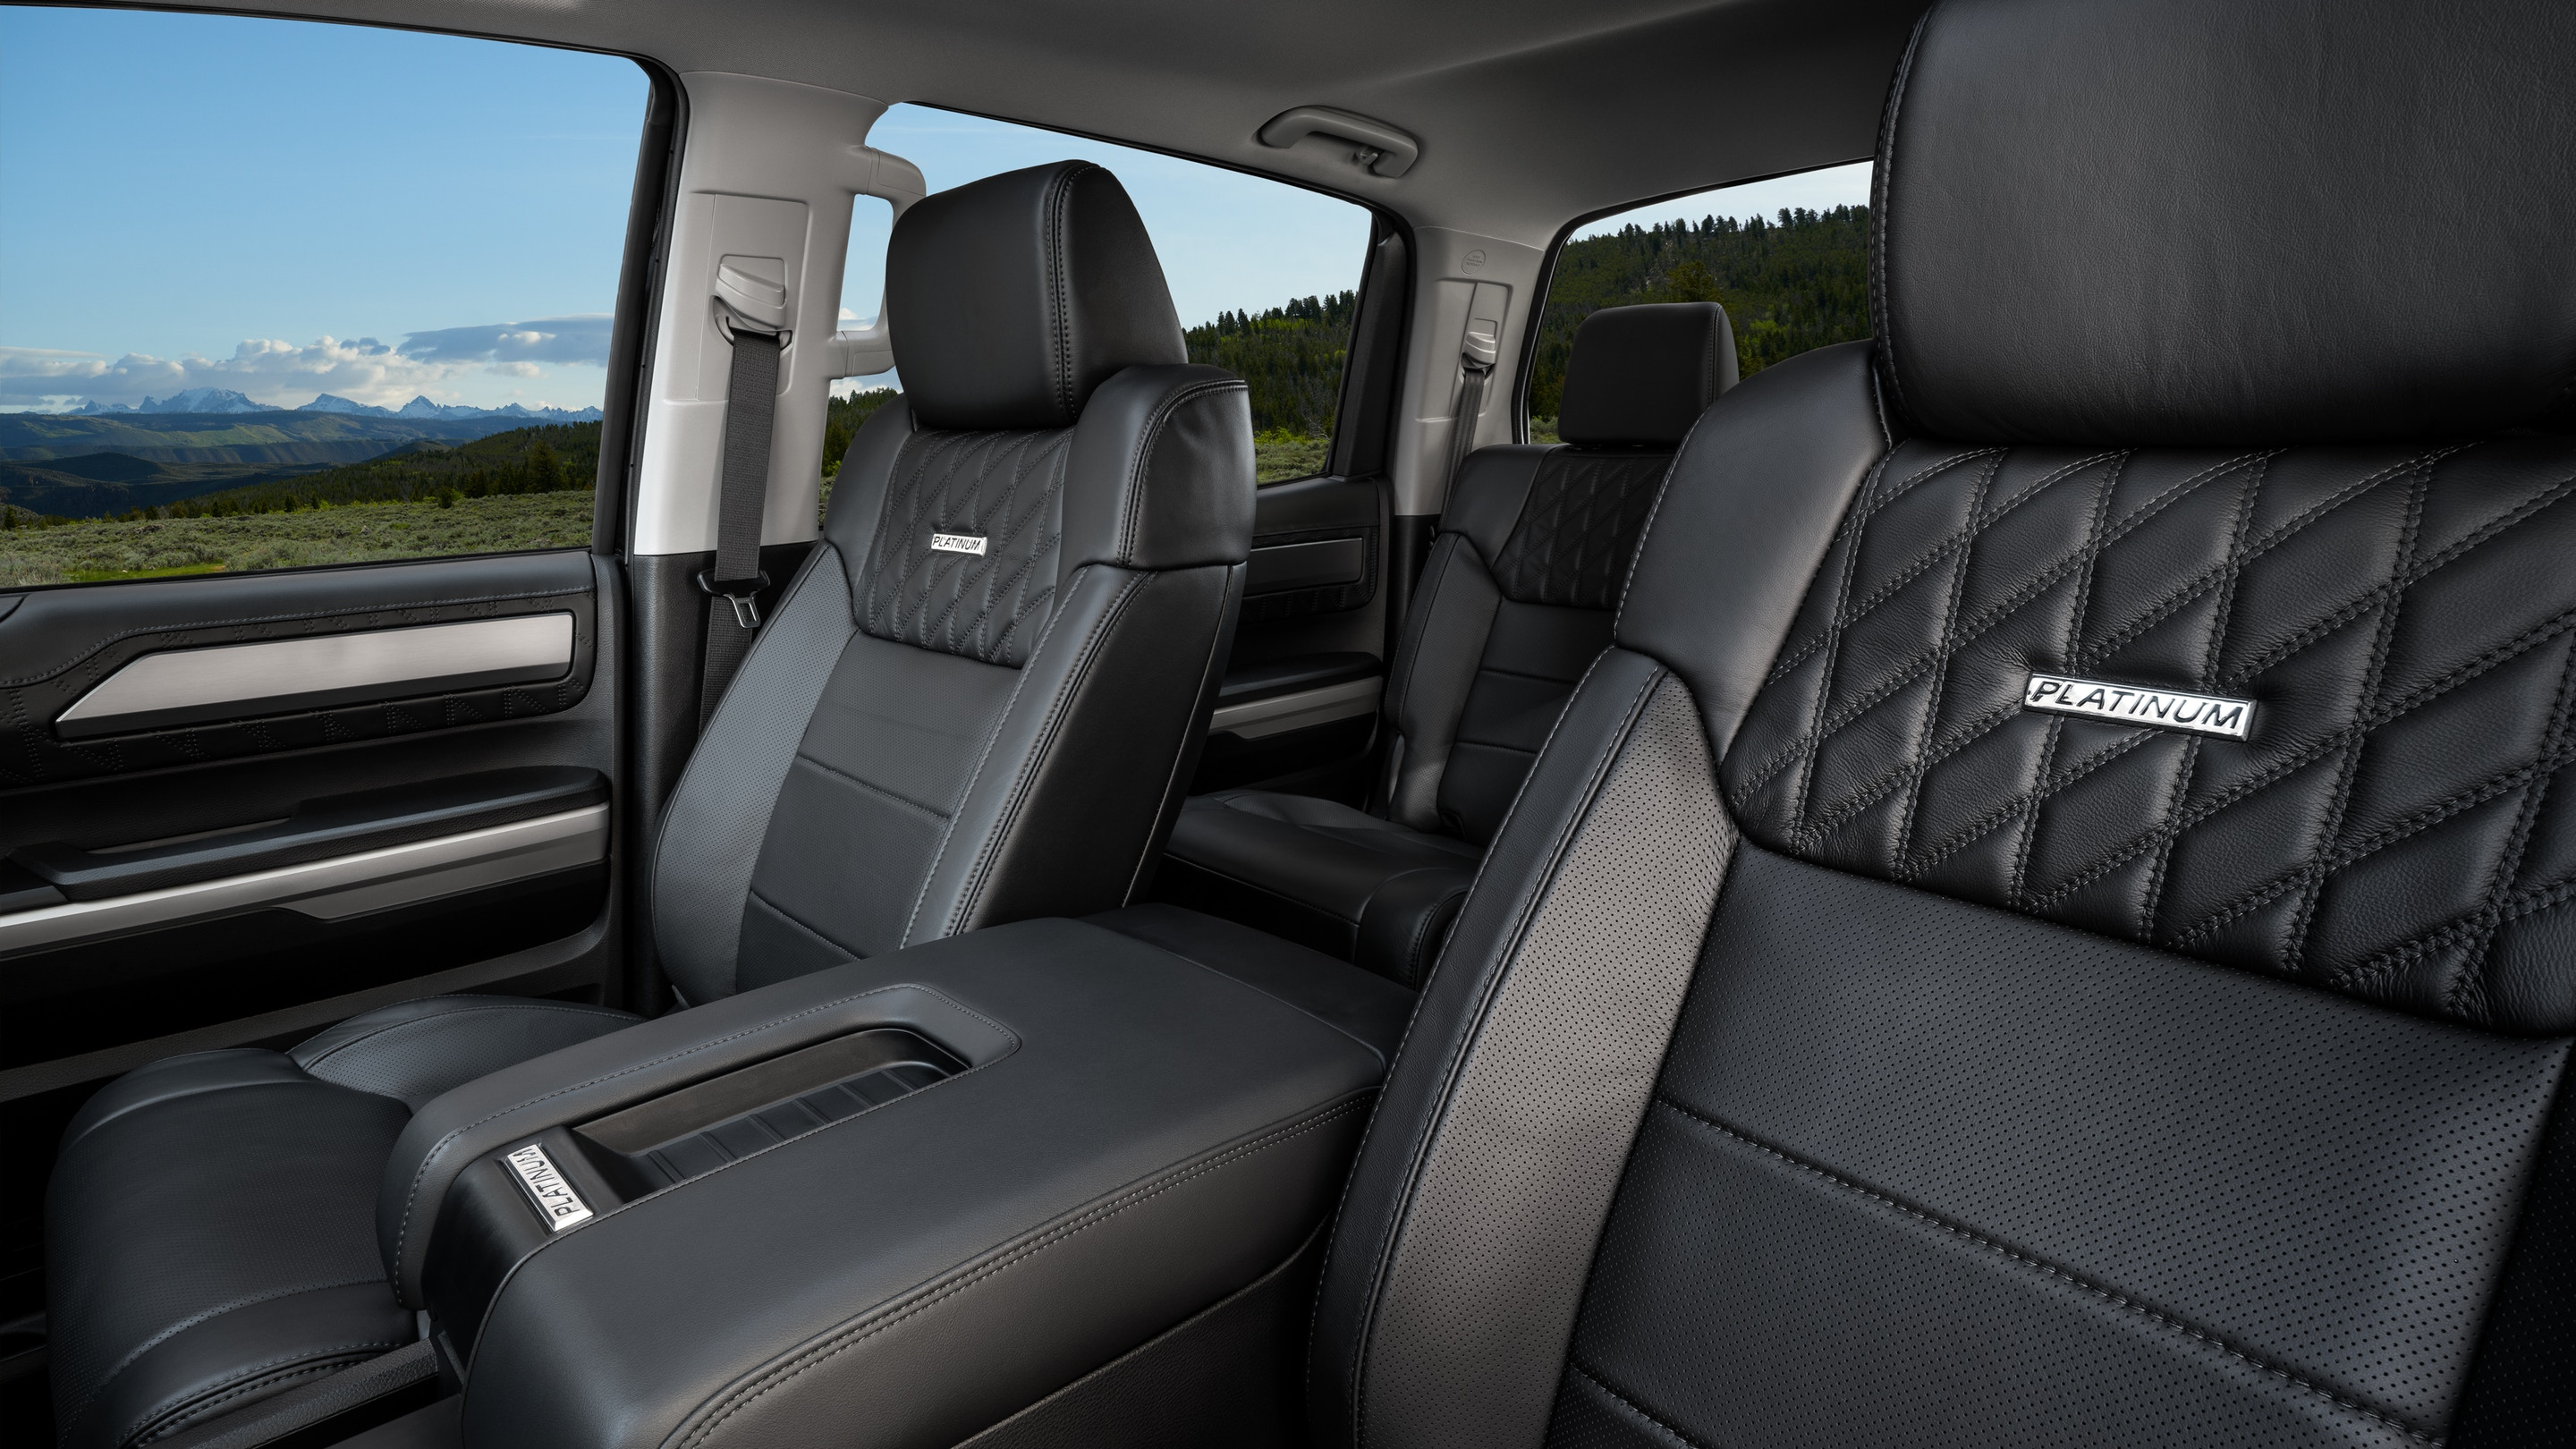 2020 Tundra Seating